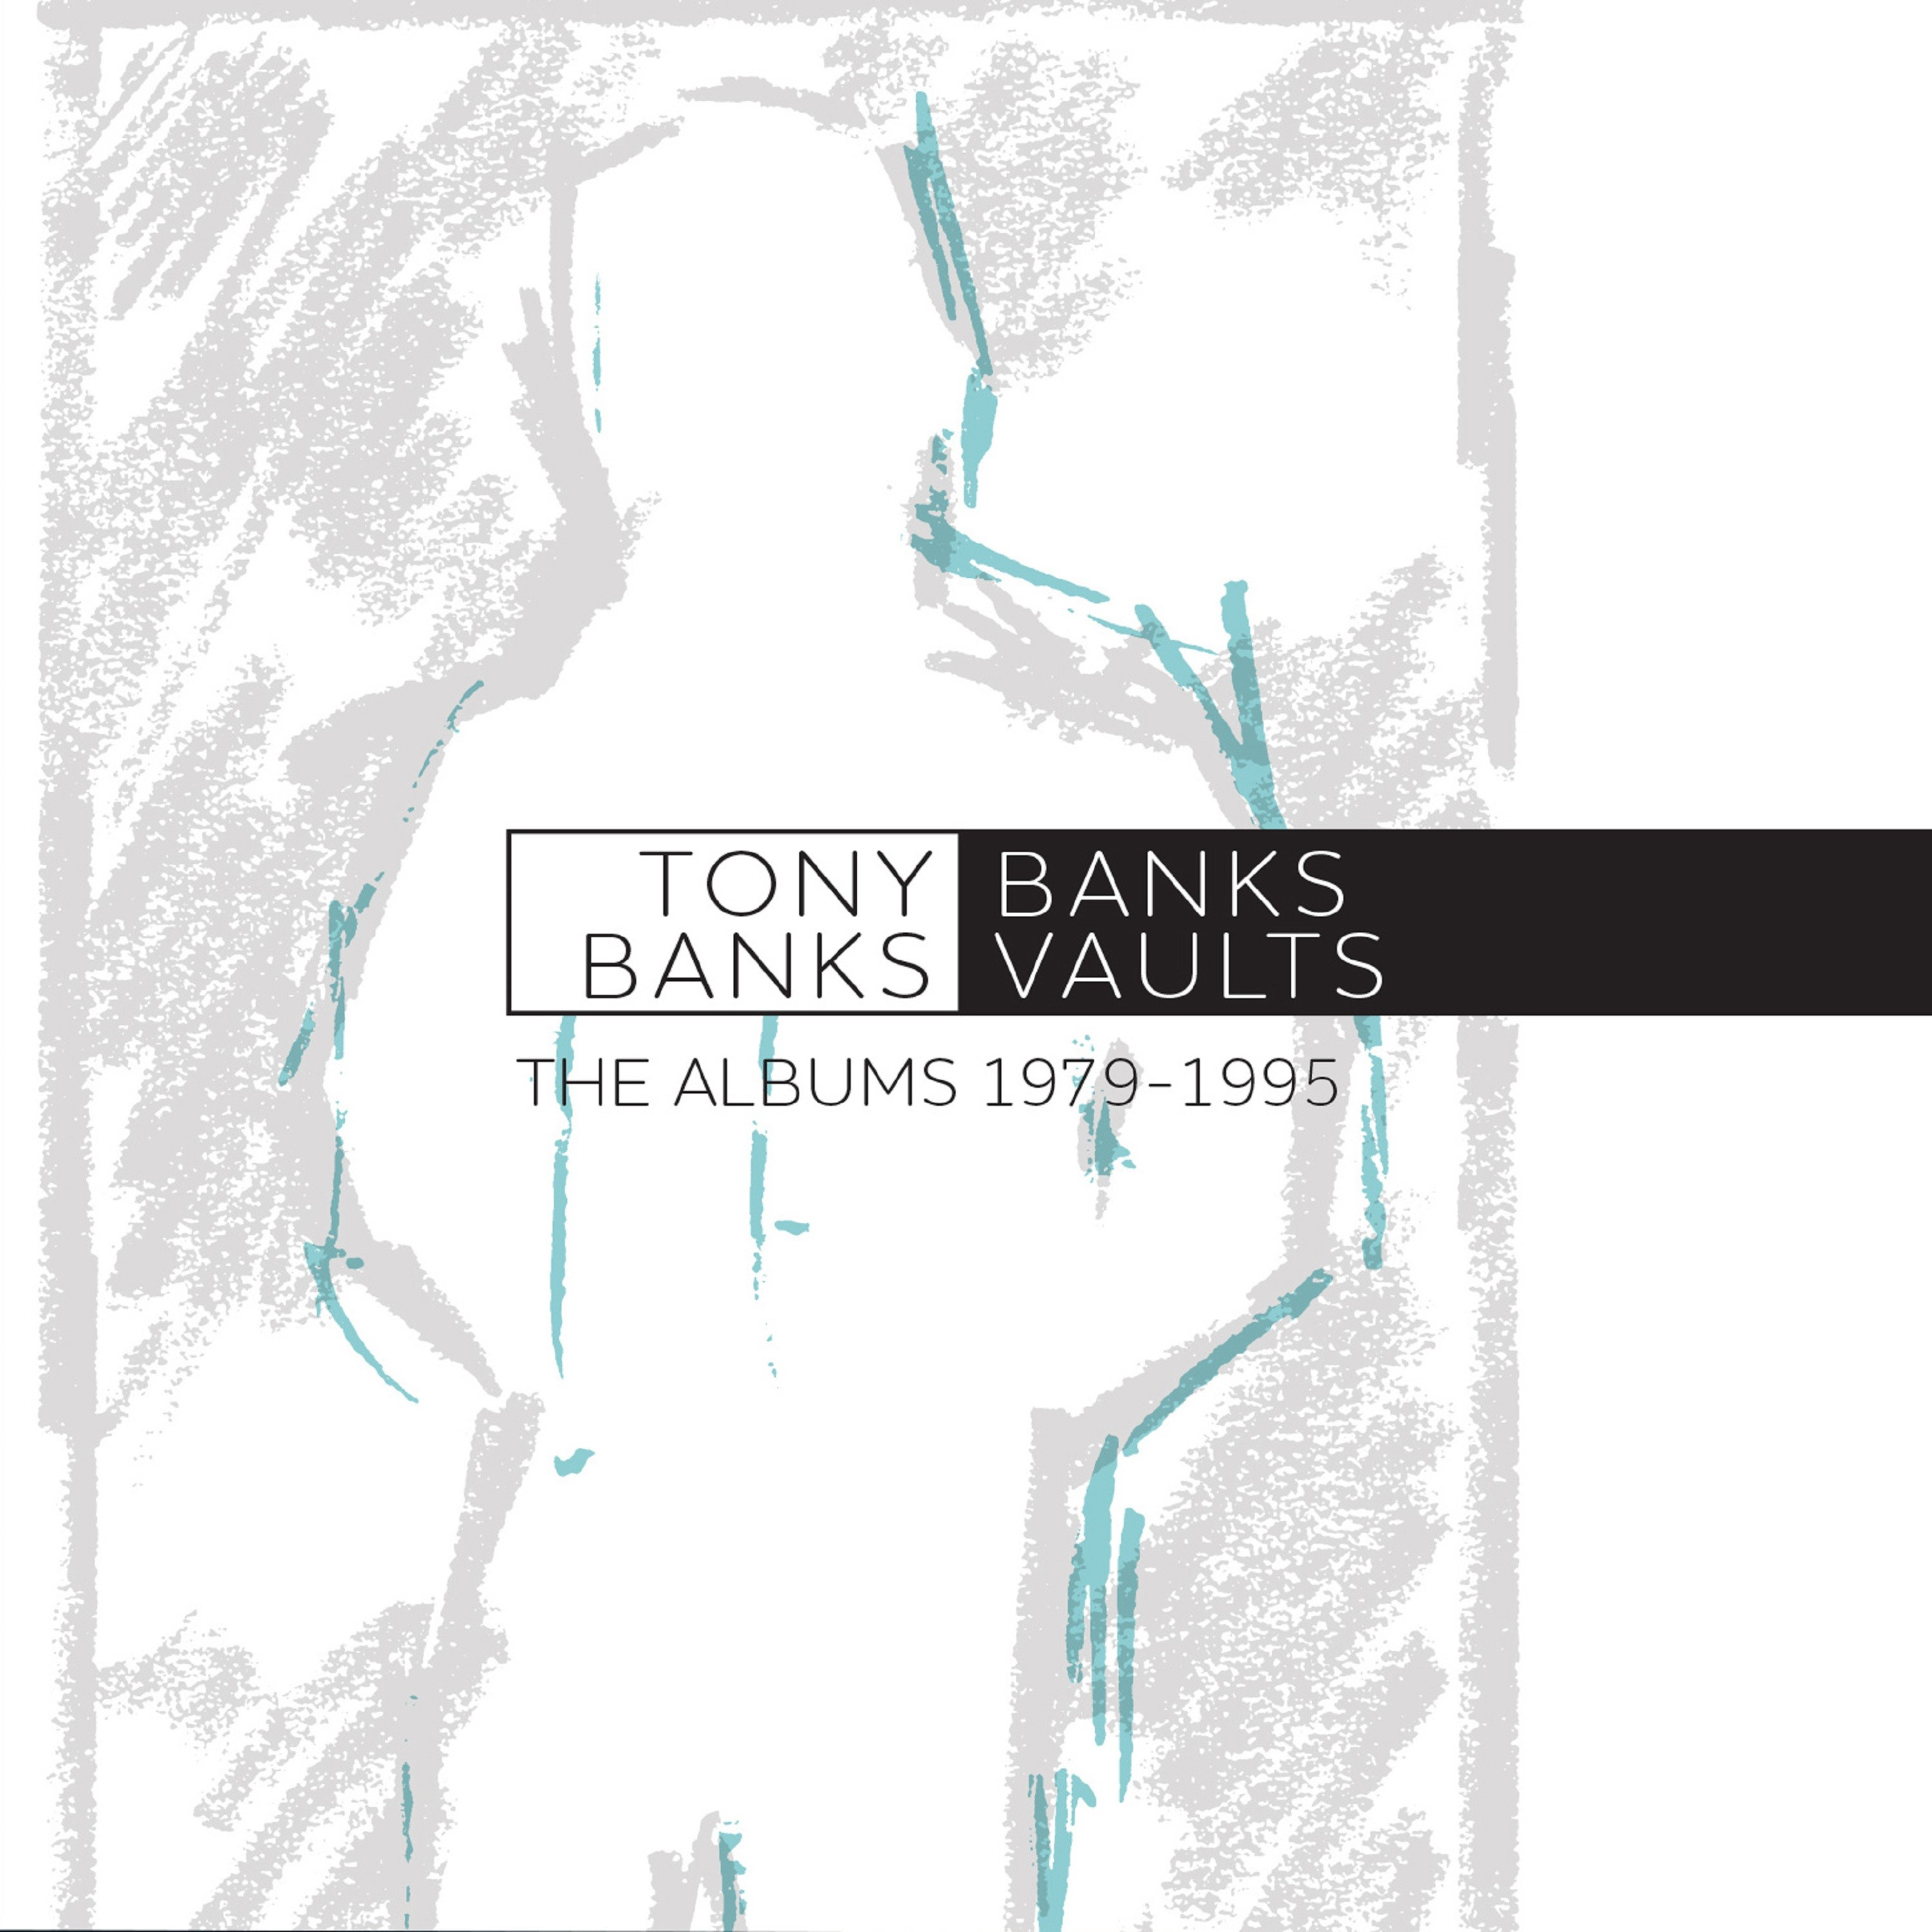 Tony Banks > Banks Vaults: The Albums 1979-1995